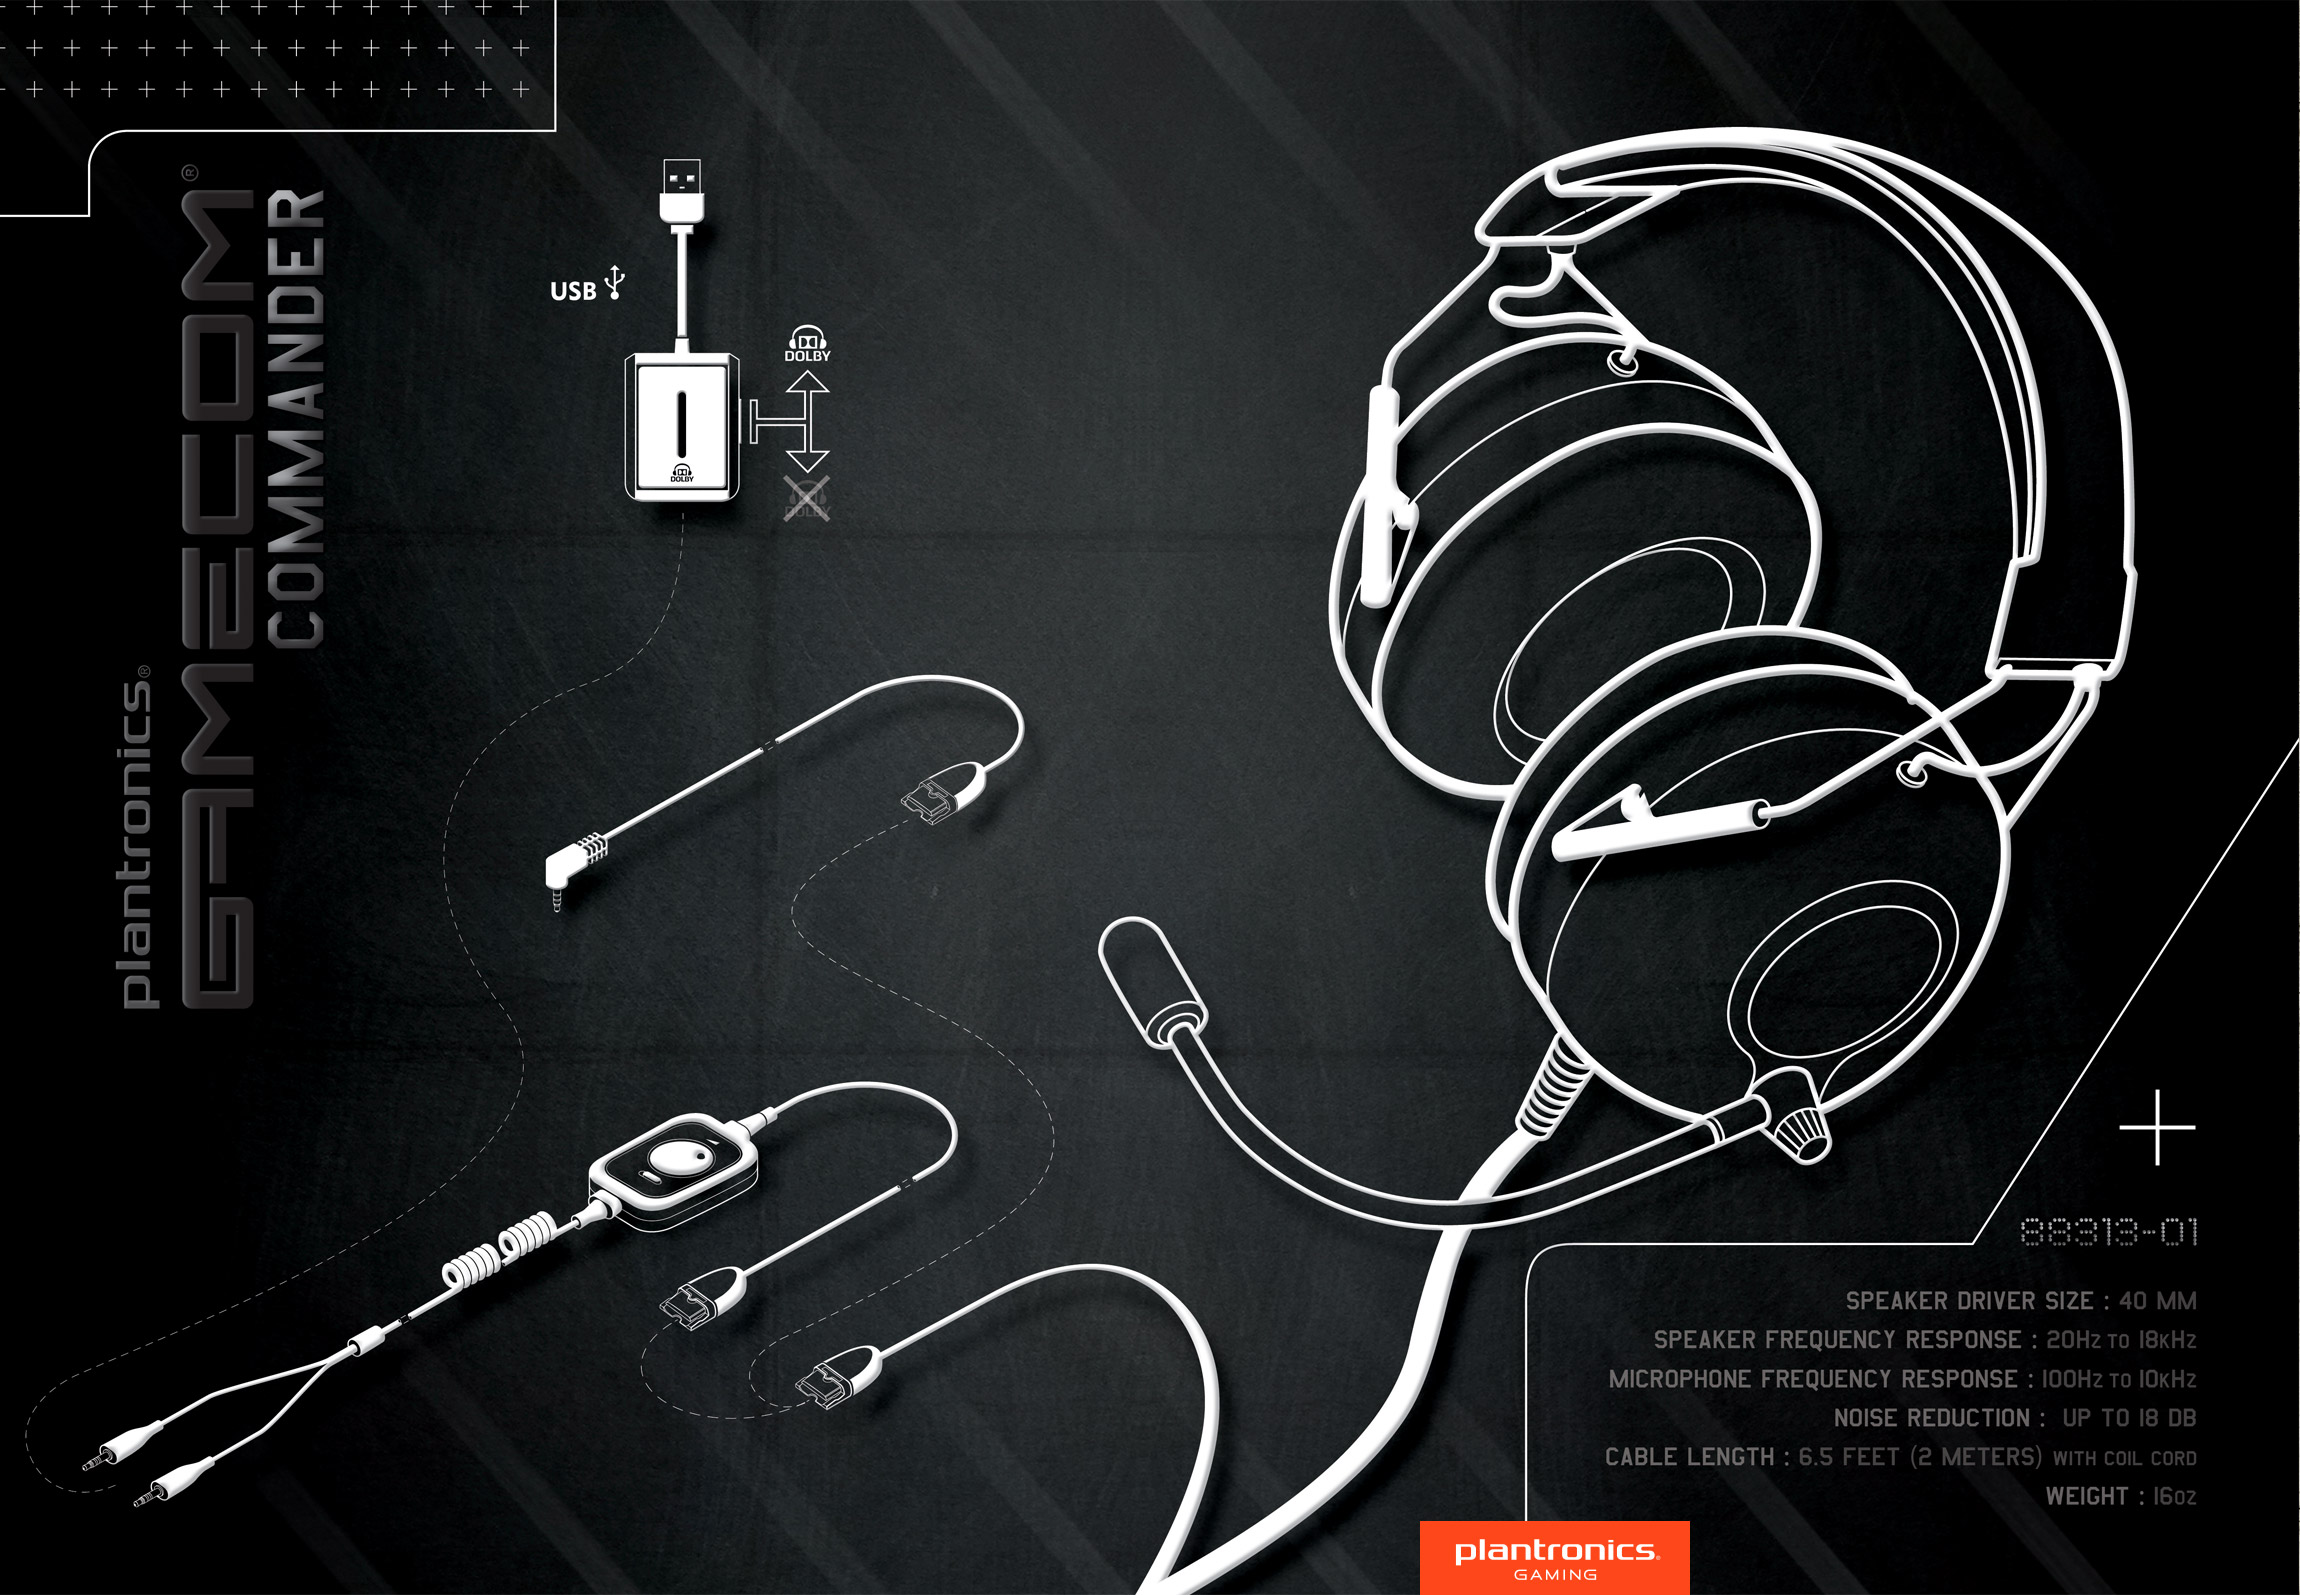 Plantronics Gamecom Commander Gaming Headphones Poster Illustration Santa Cruz - Graphic Regime